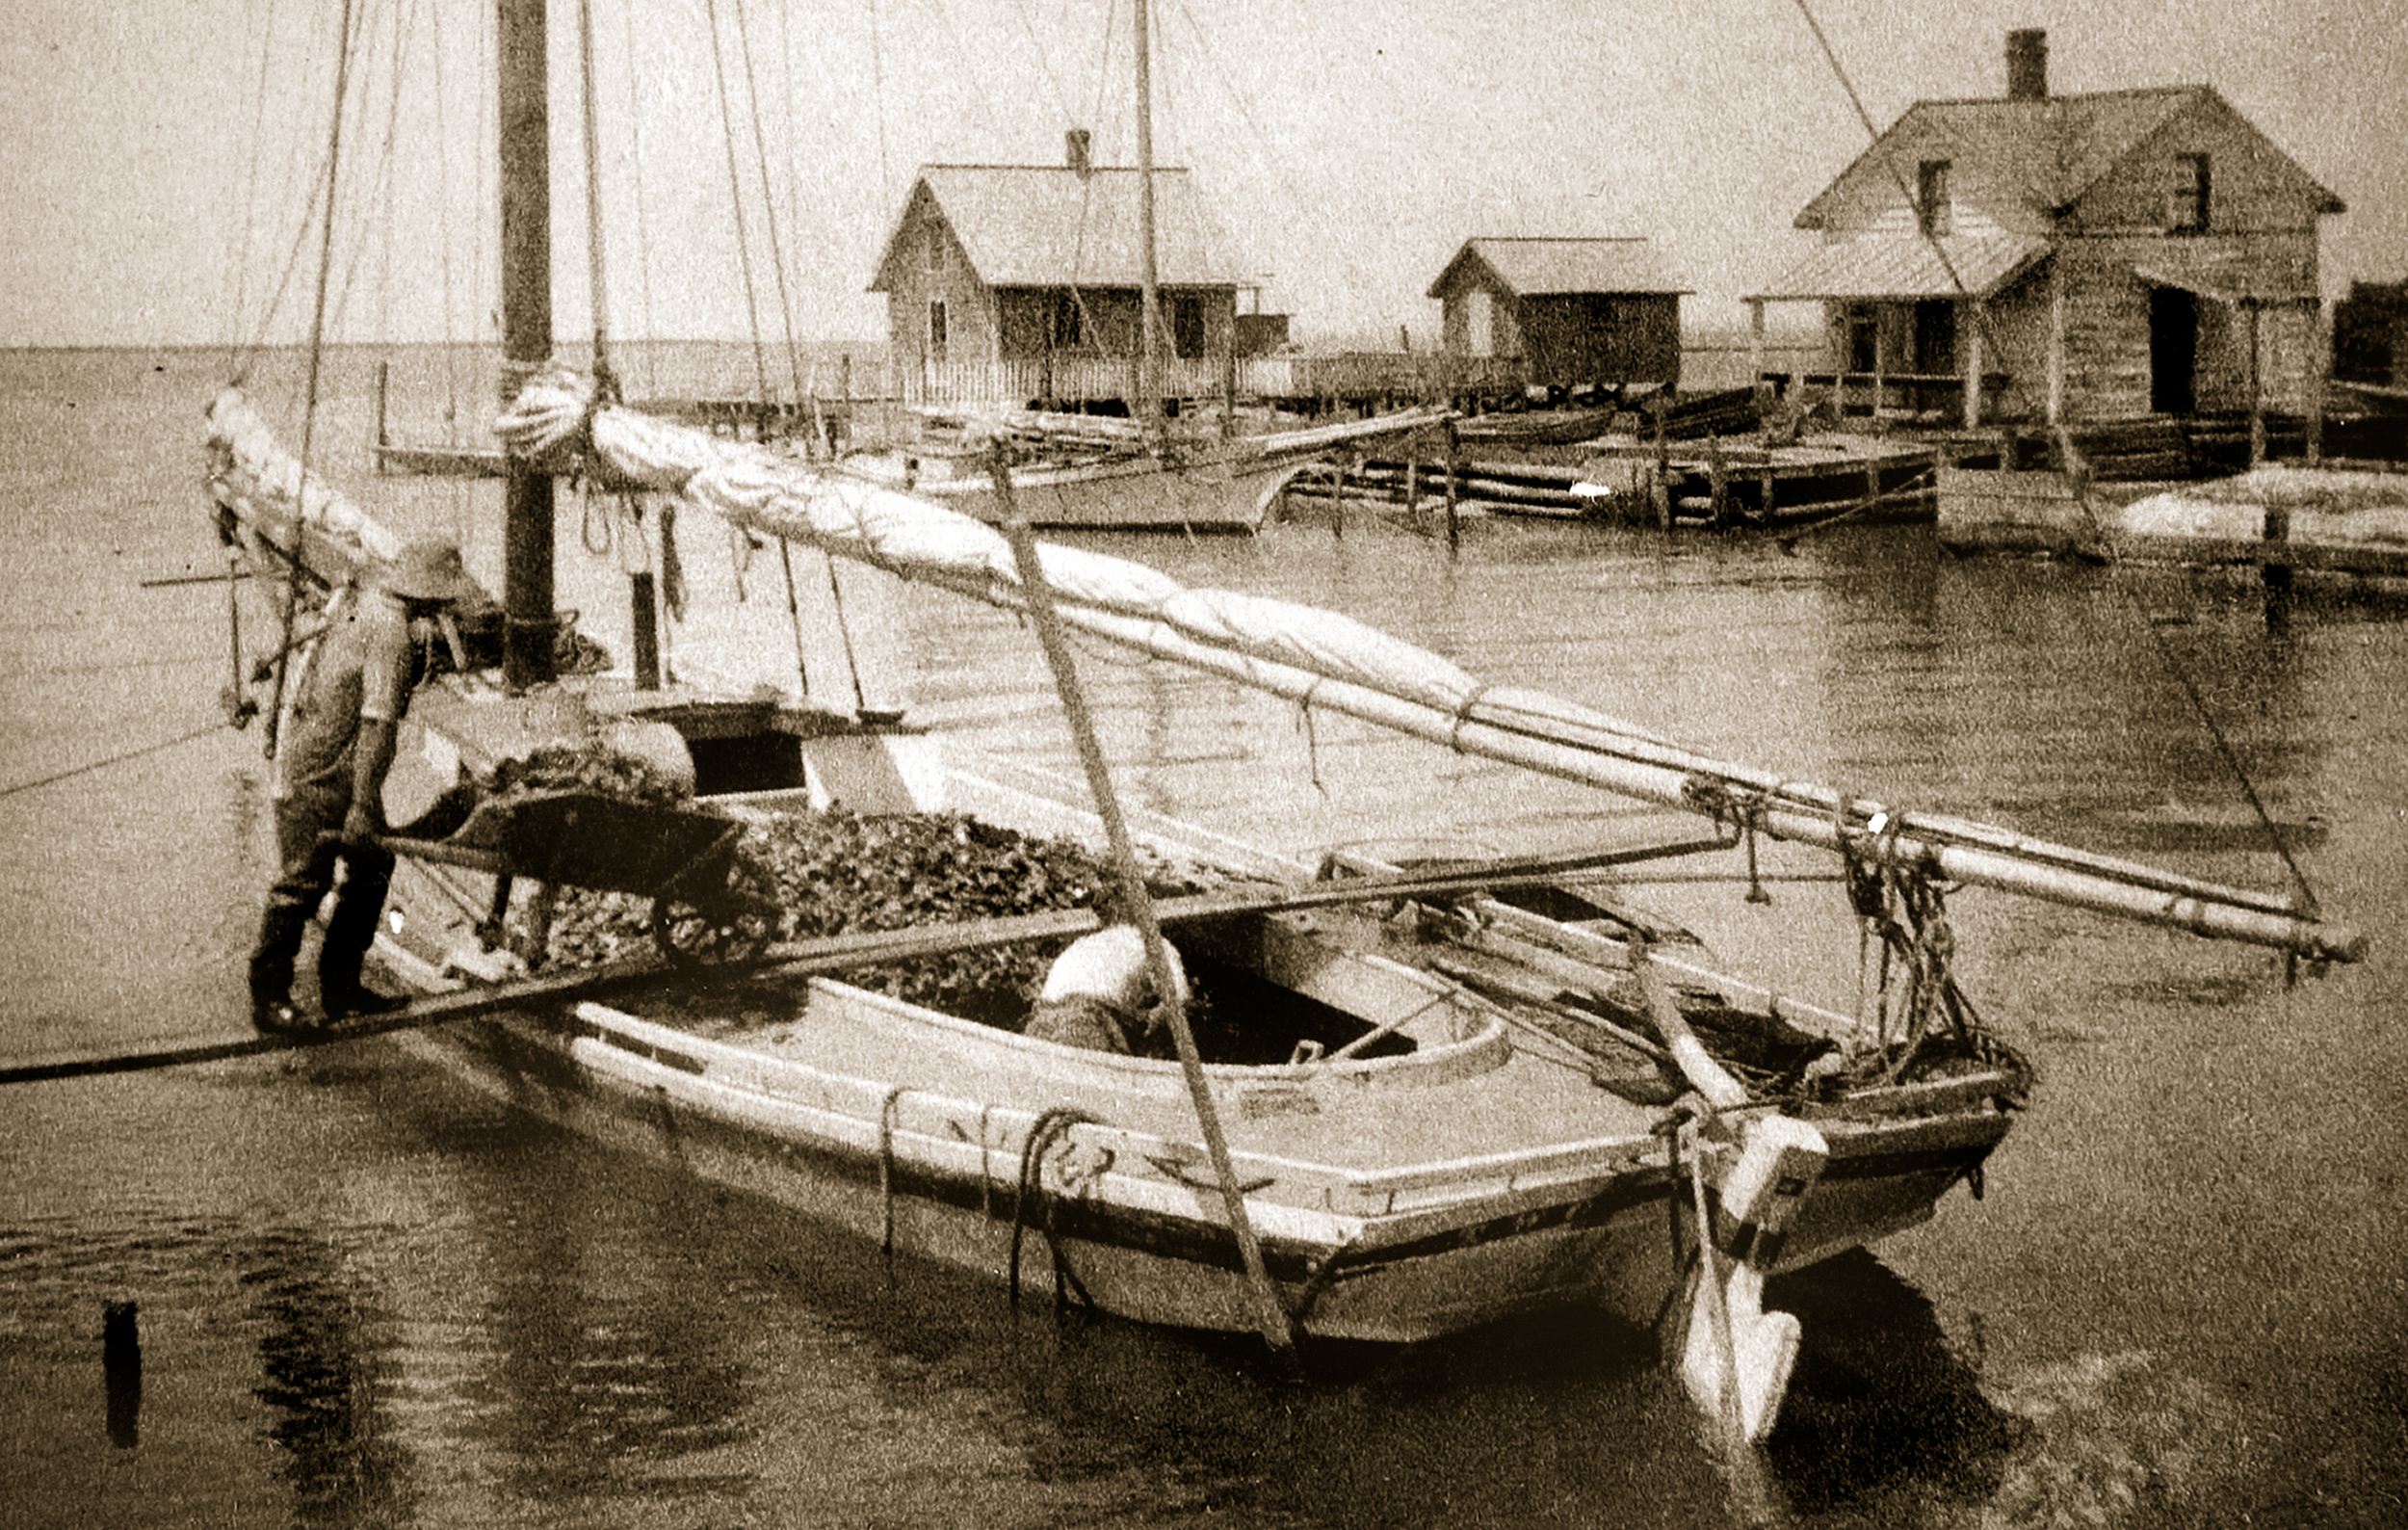 Loading oysters. Broadwater, Virginia approx. 1890